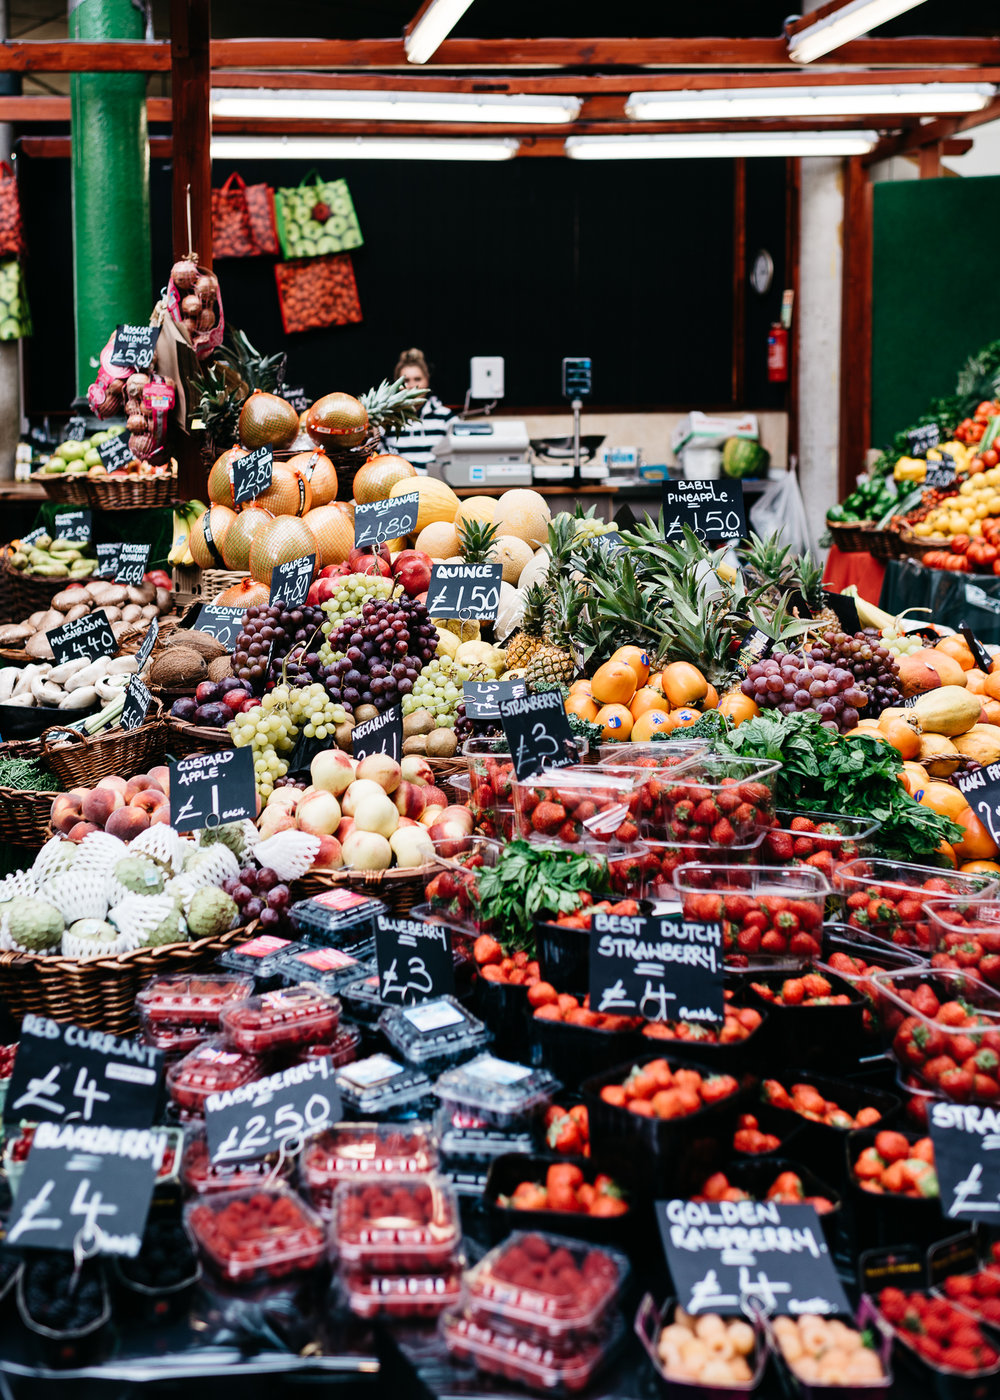 Impressive produce display at Borough Market